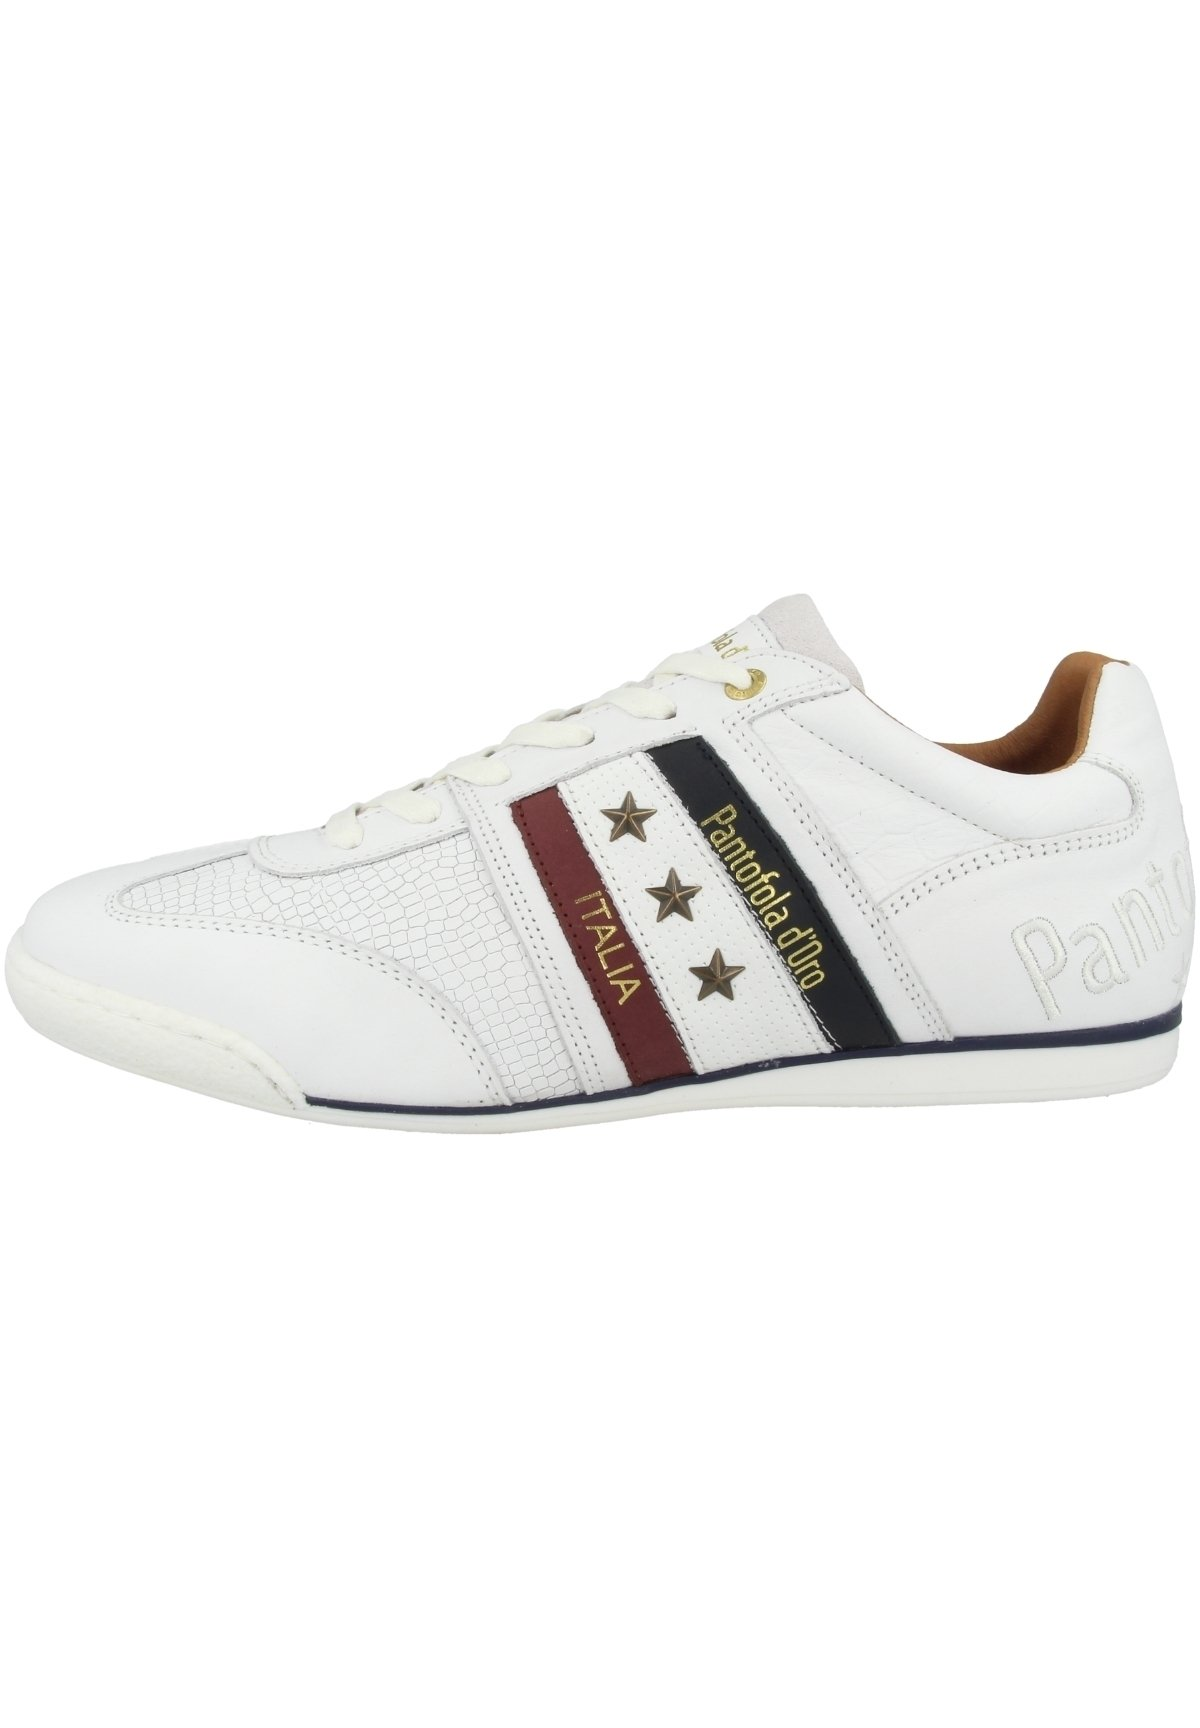 Homme IMOLA  - Chaussures à lacets - bright white